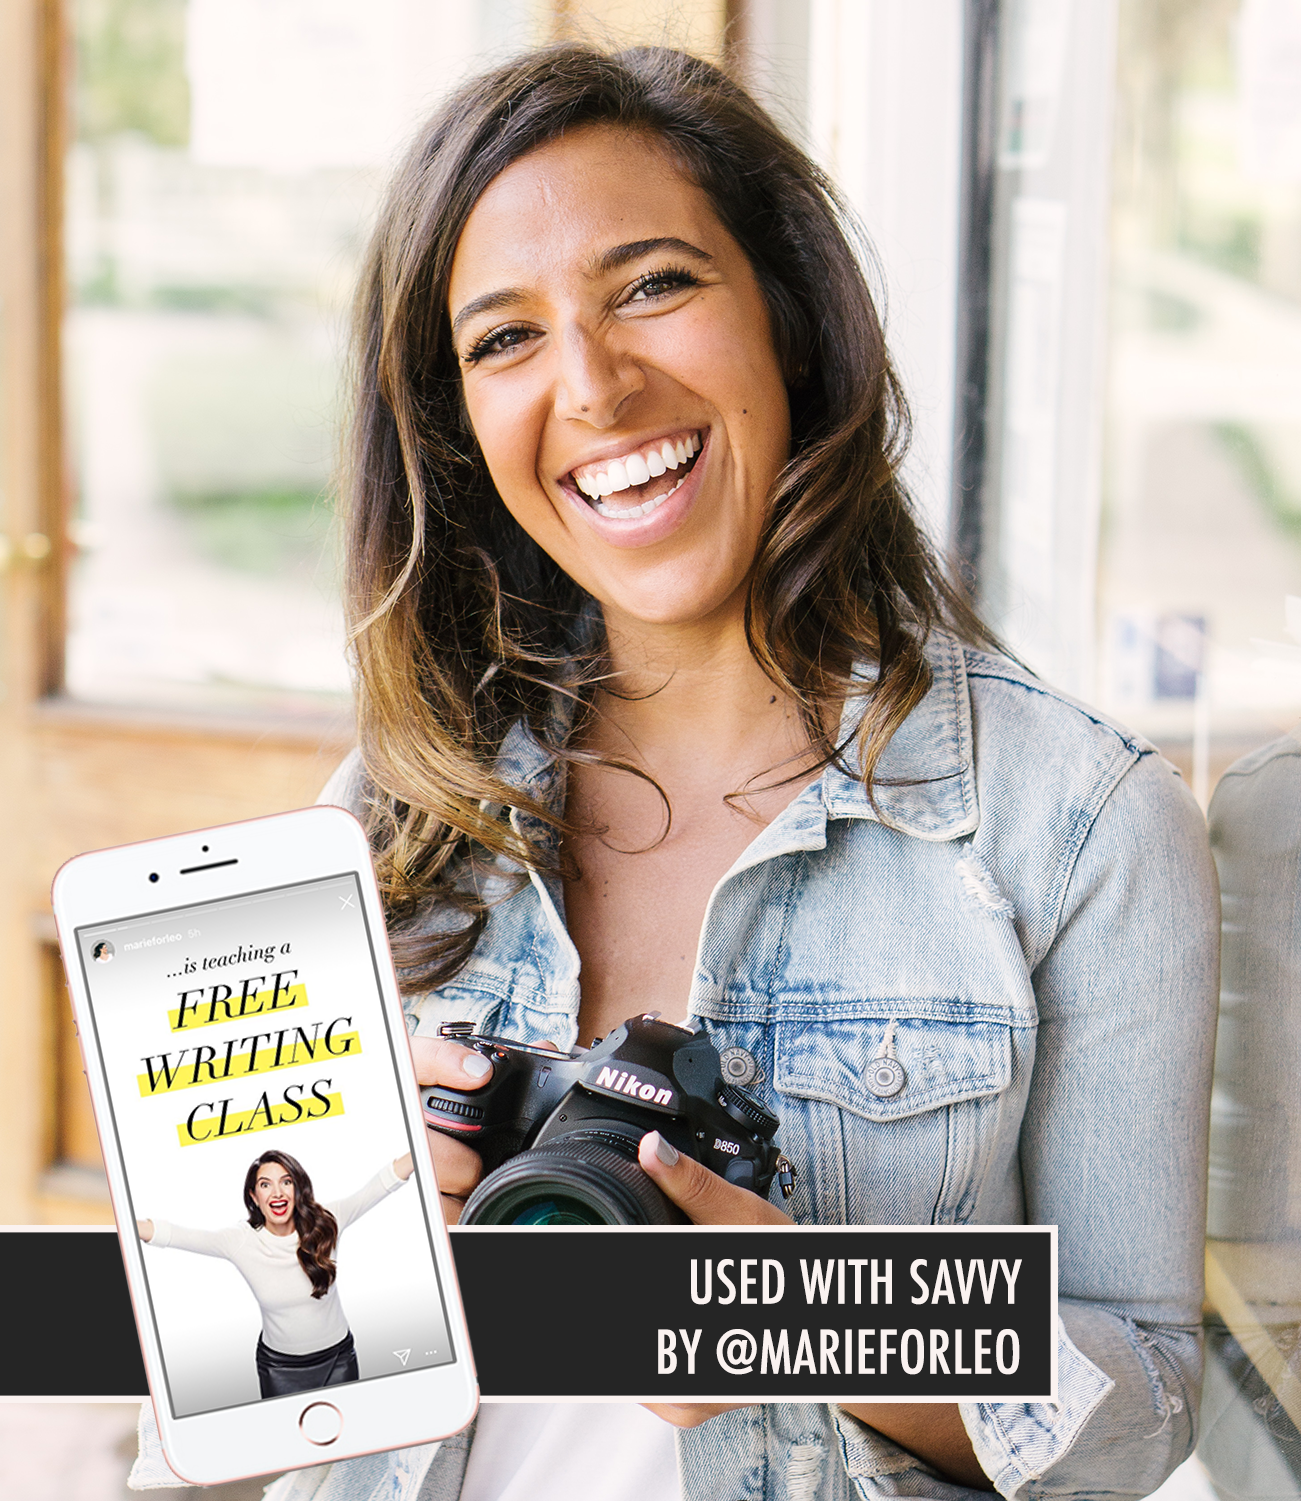 9 Photos Every Influencer Has in Her Photo Bank & How She Uses Them |  Do You Need These Photos to Uplevel Your Social Media Strategy?  | Alexis the Greek blog